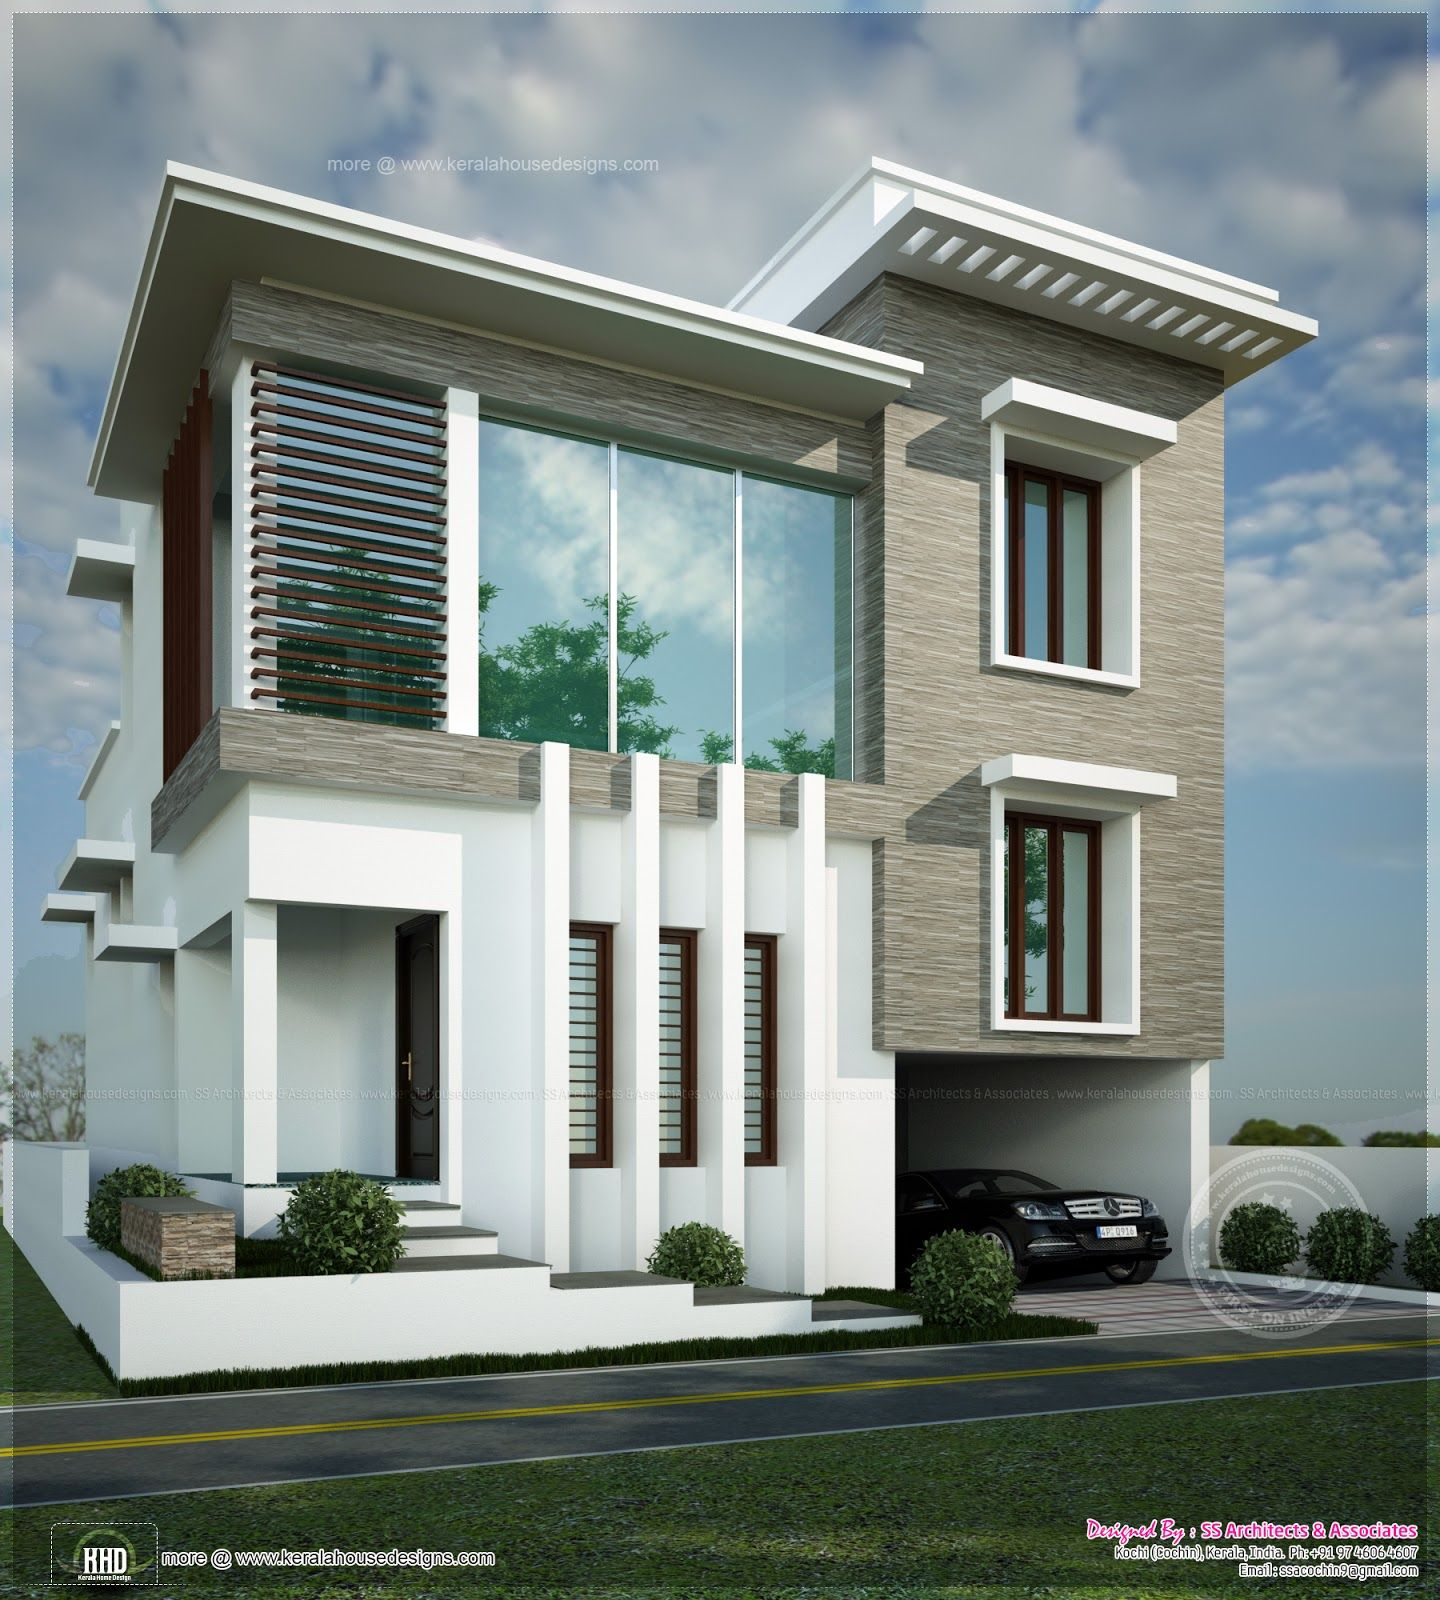 Square feet contemporary modern home kerala home design for Kerala home designs contemporary